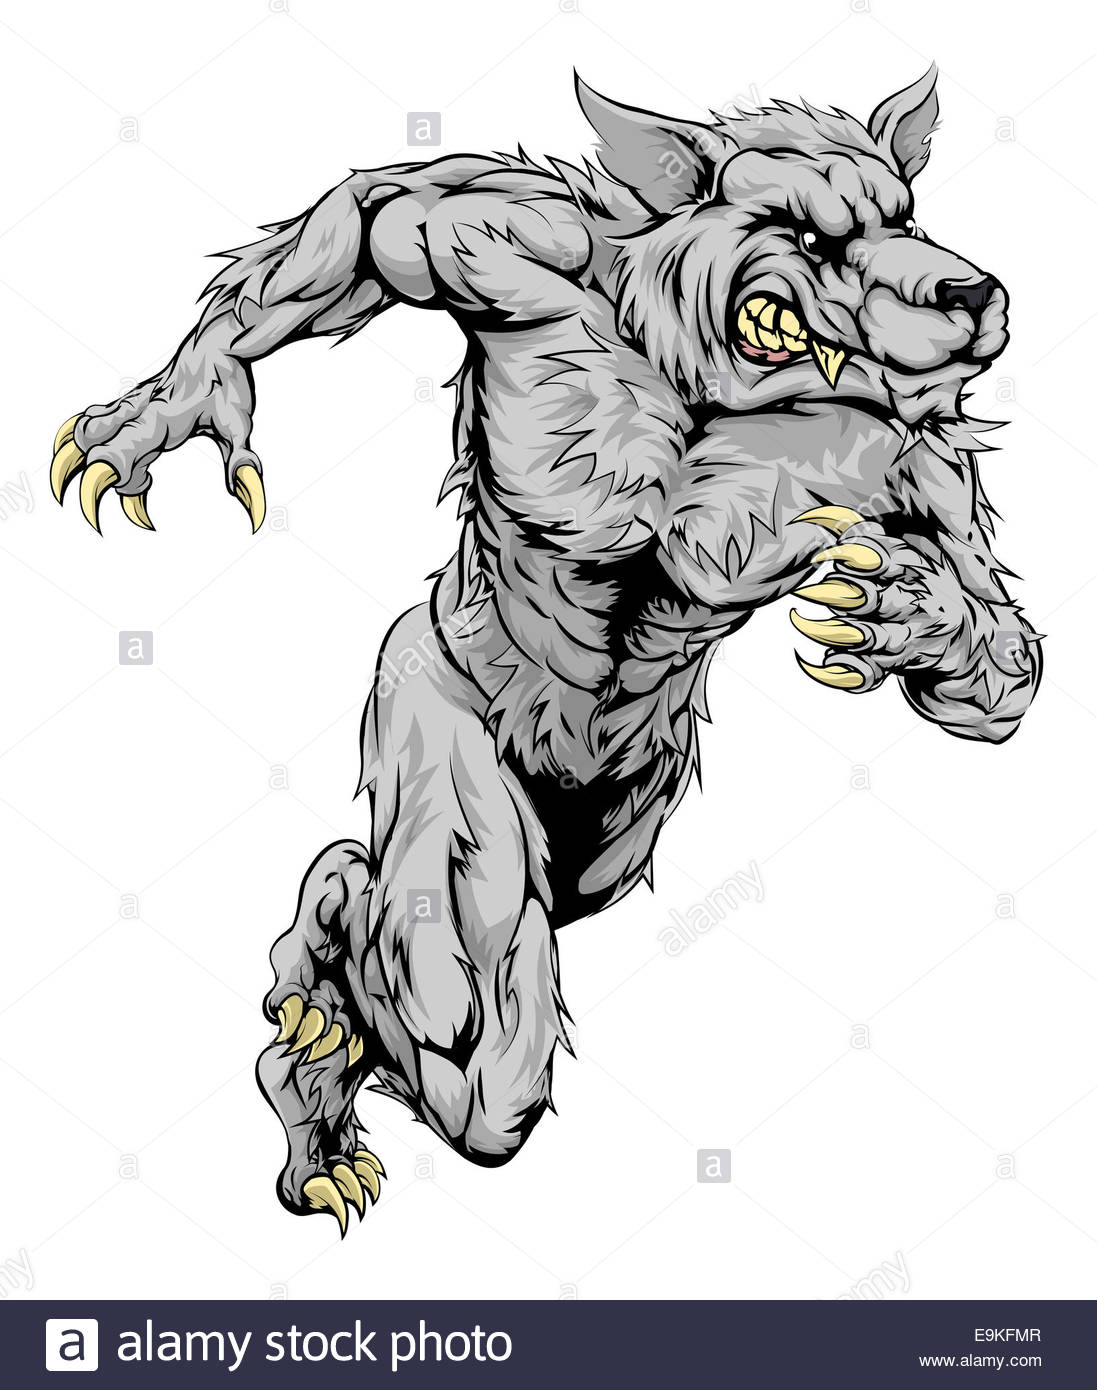 1097x1390 A Werewolf Wolf Man Character Or Sports Mascot Charging, Sprinting